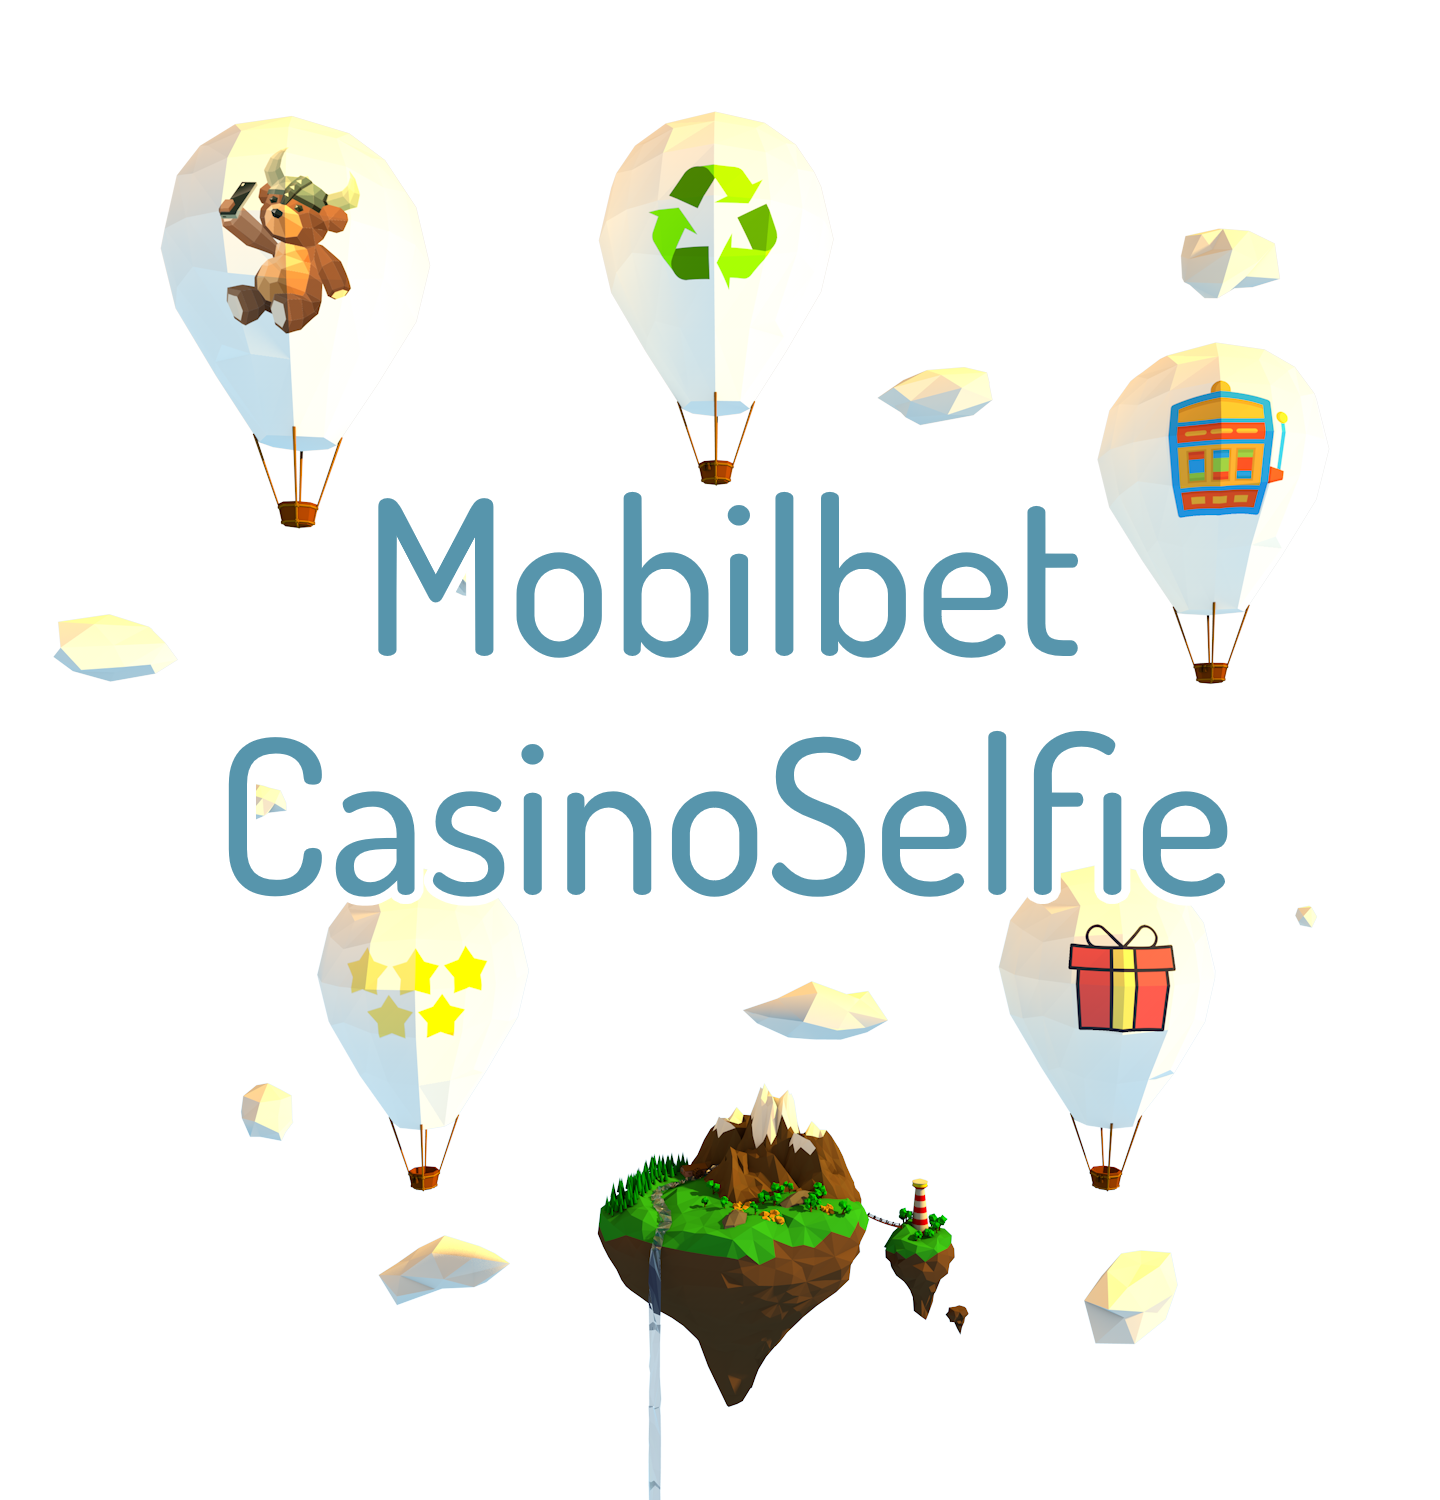 Mobilbet omtale